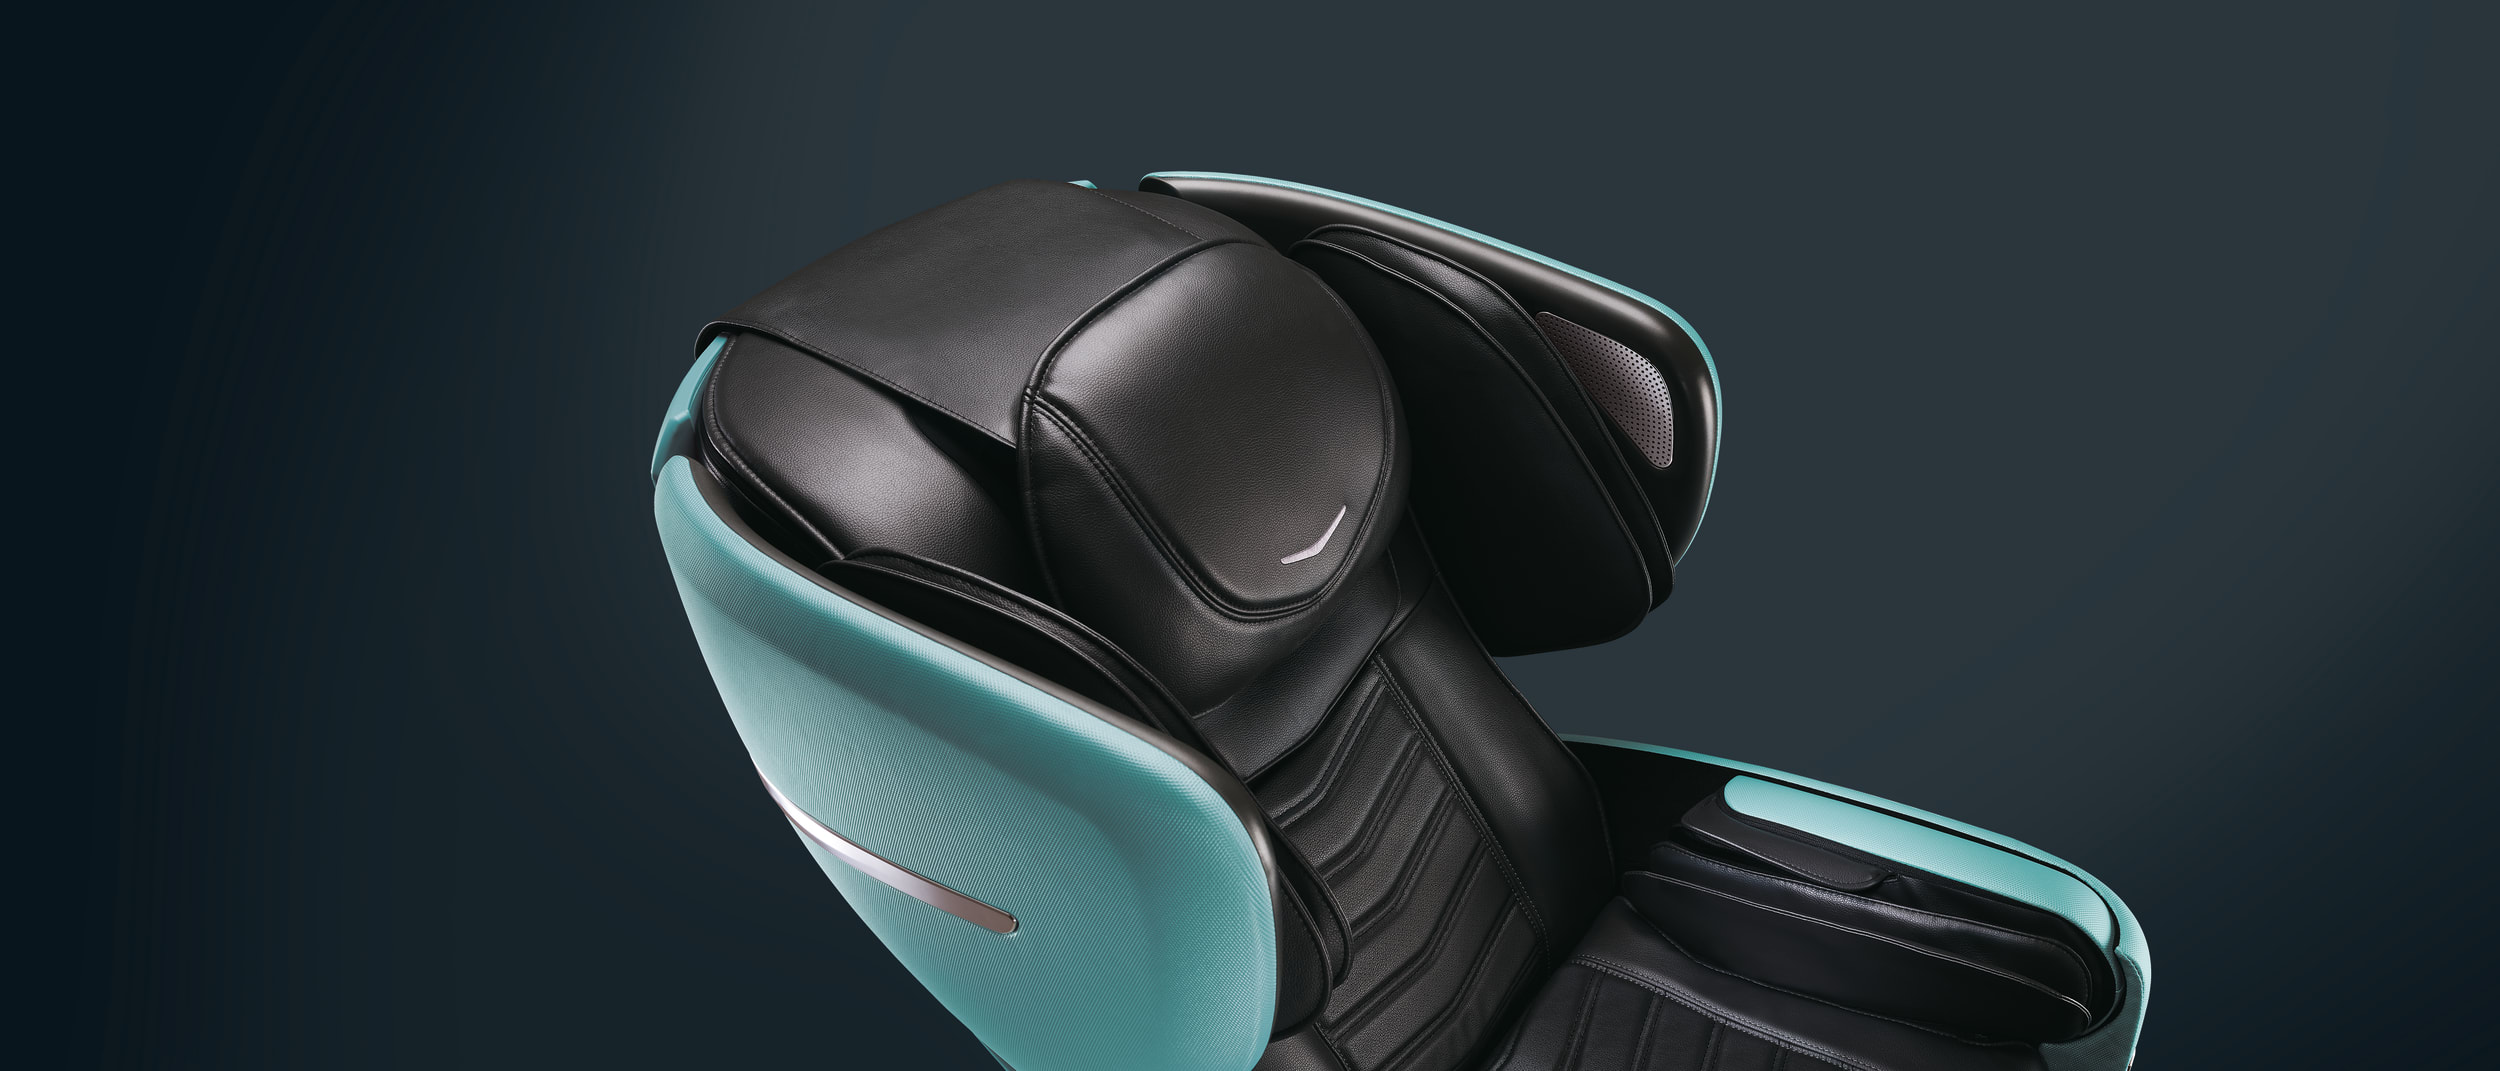 OSIM uDivine: The most in-demand essential chair of 2020